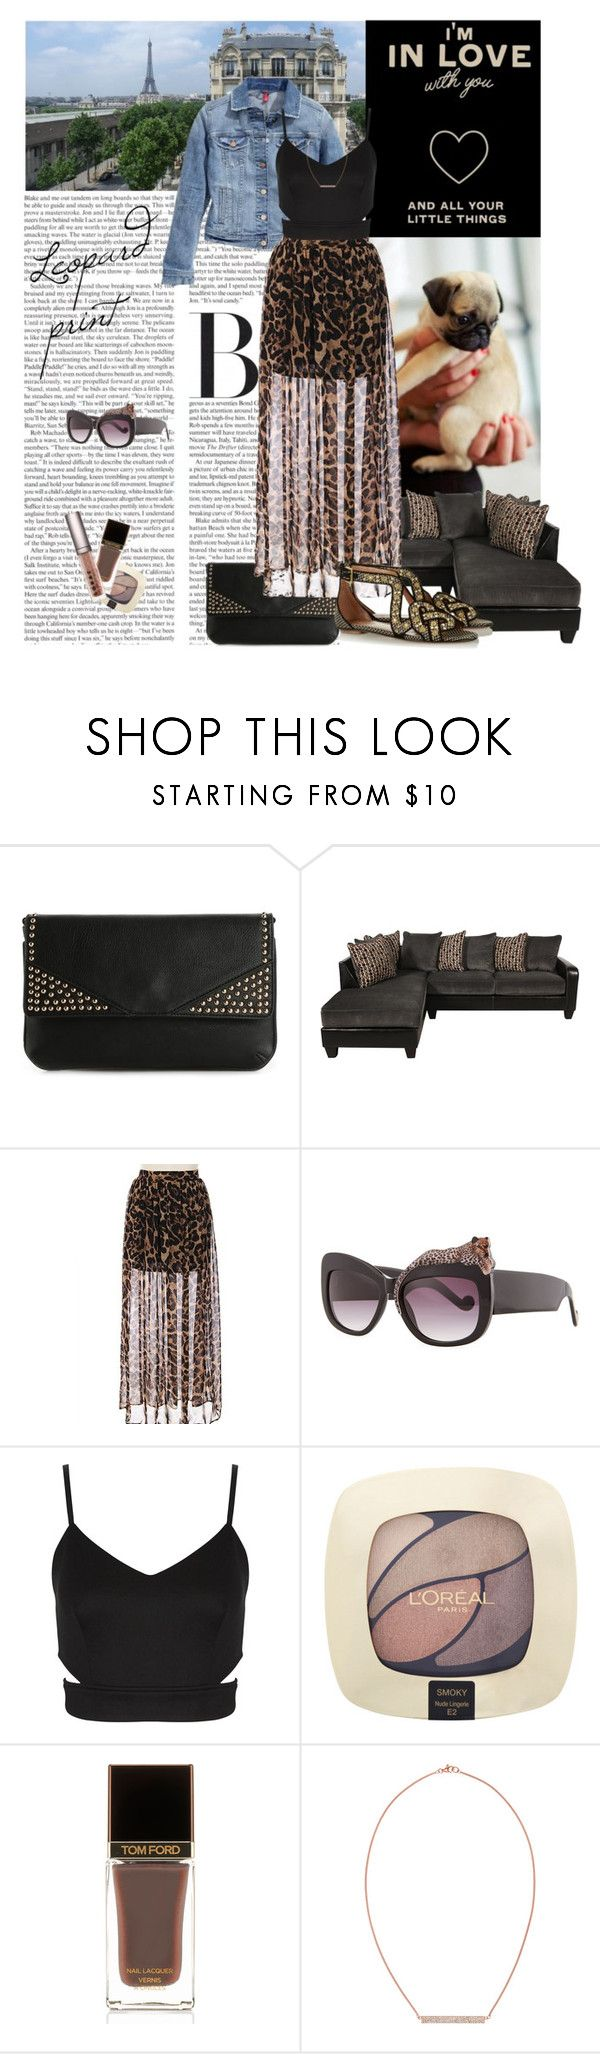 """Leopard print"" by amethystes ❤ liked on Polyvore featuring Melie Bianco, Anna-Karin Karlsson, L'Oréal Paris, Tom Ford, Rebecca Minkoff, LORAC, denim, croptop, Clutch and maxiskirt"